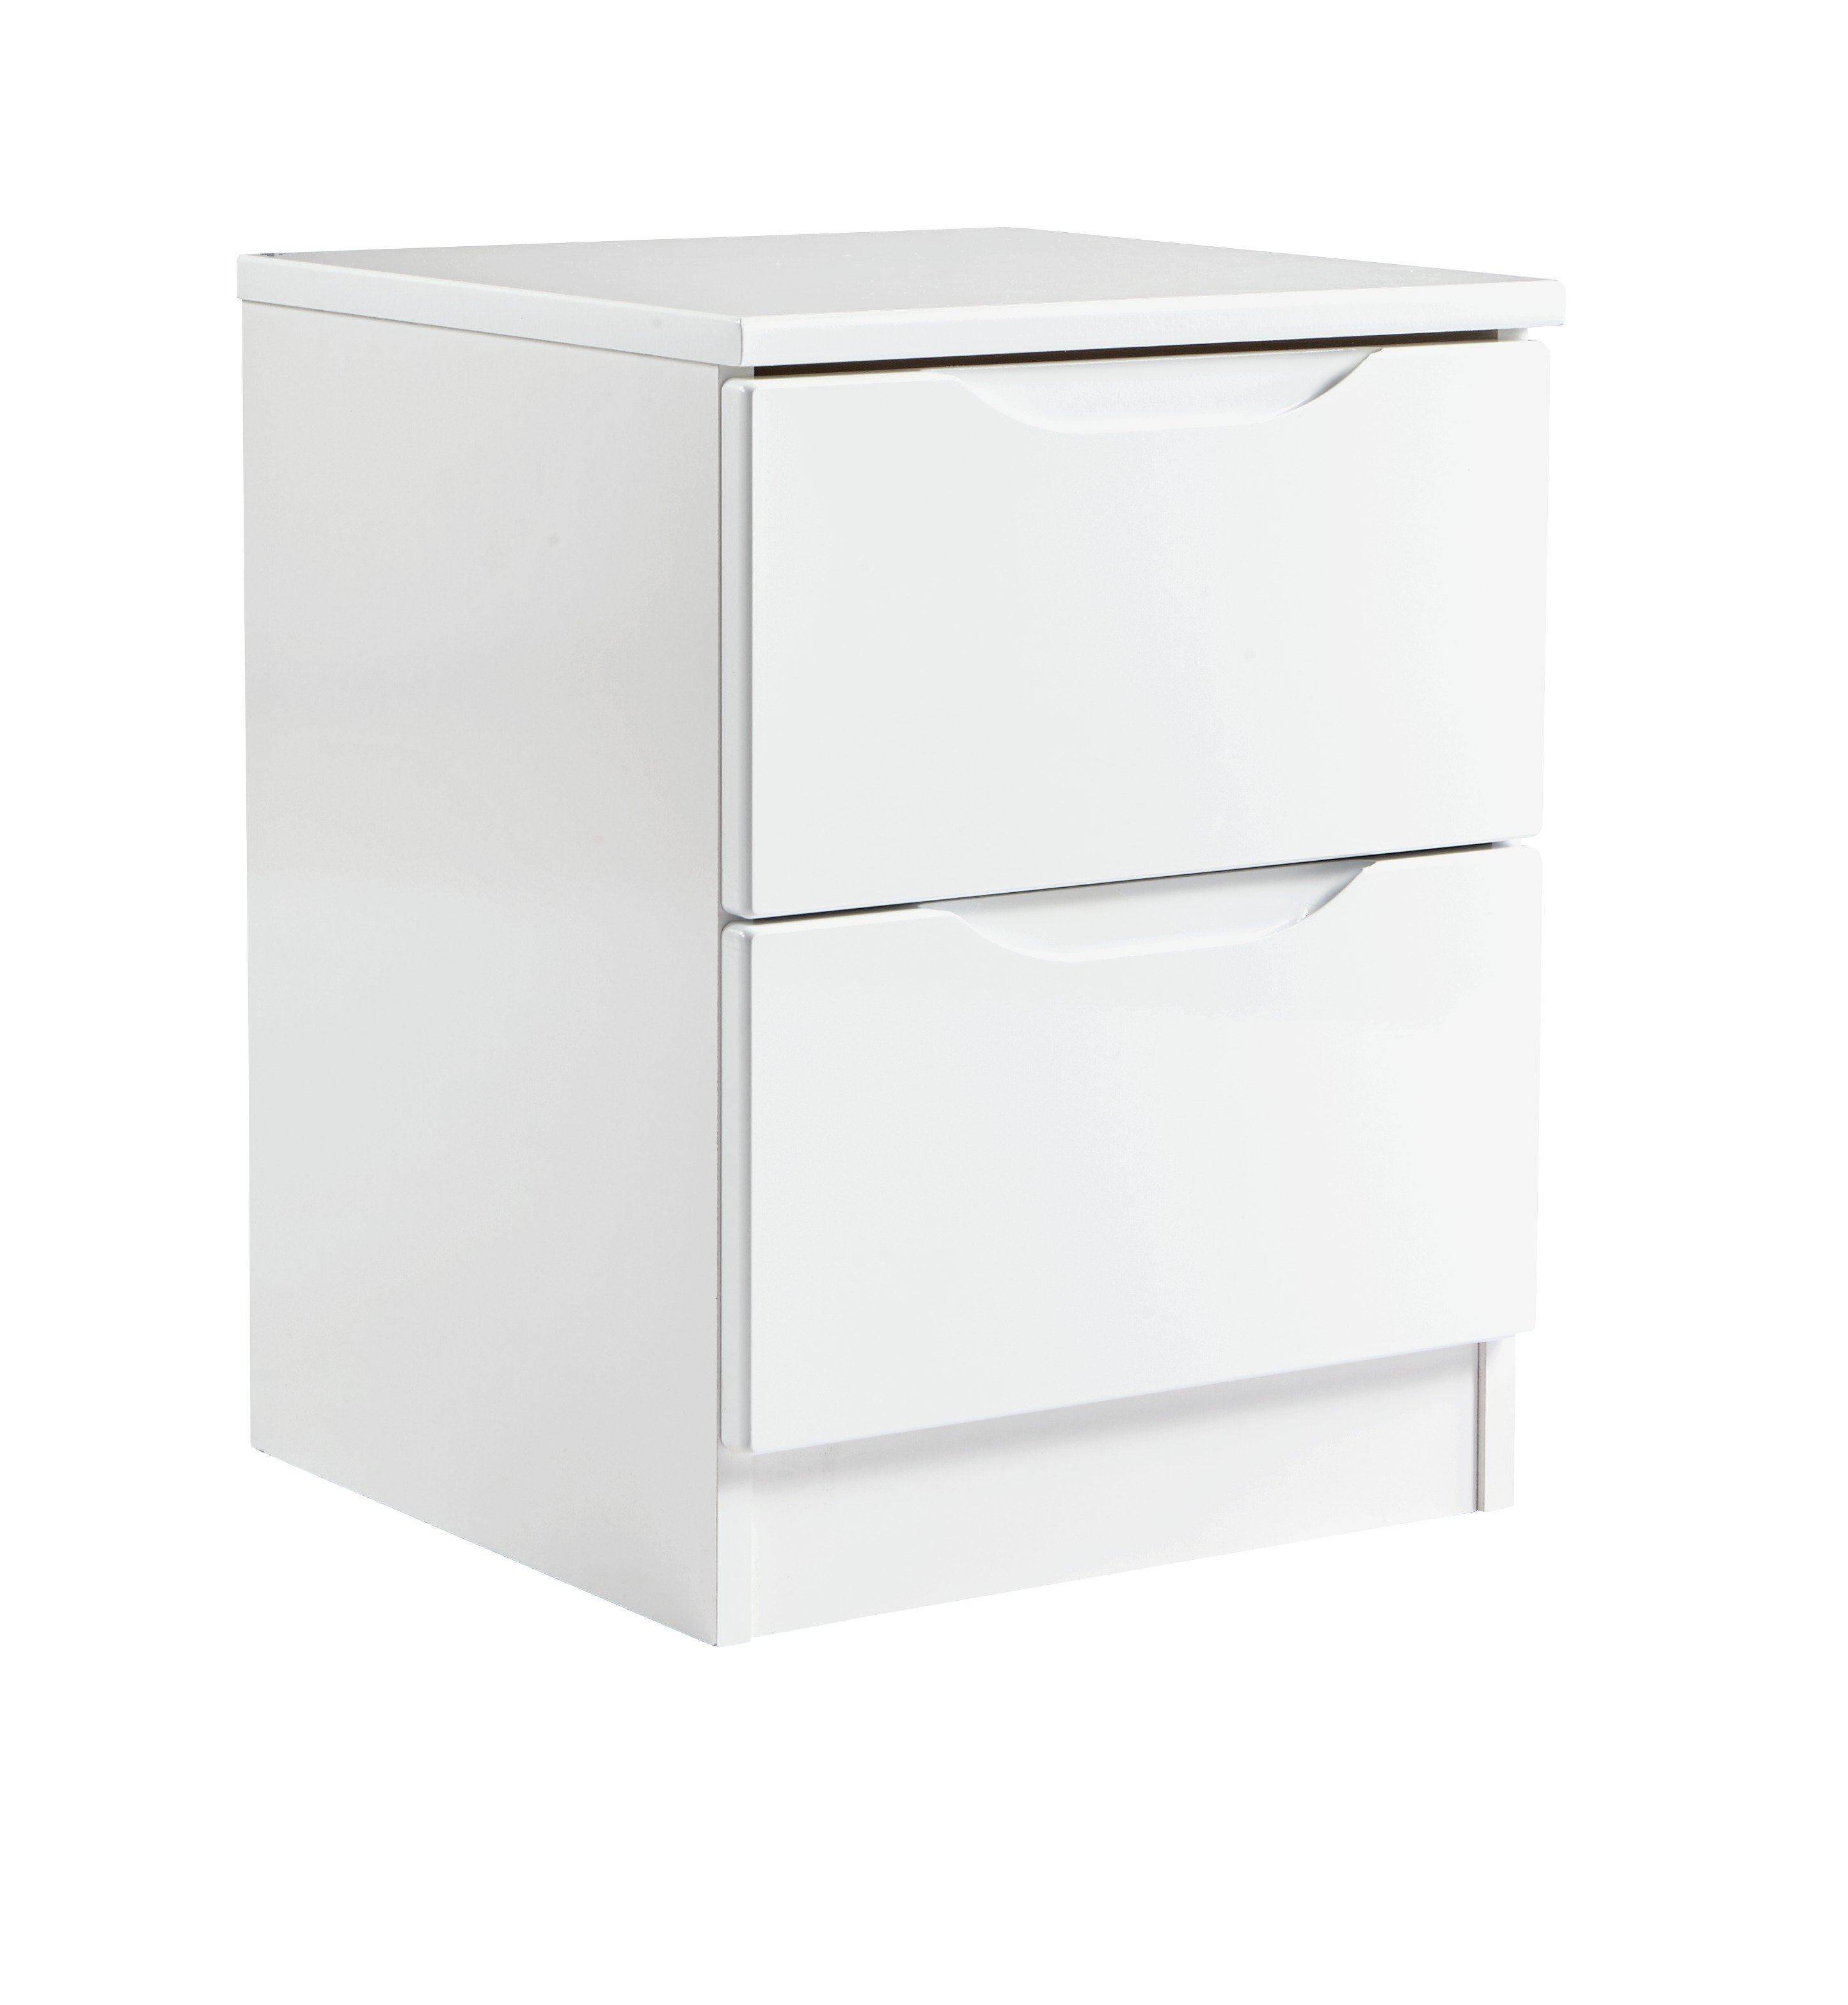 Argos Bedside Tables and Cabinets | Bedroom Furniture